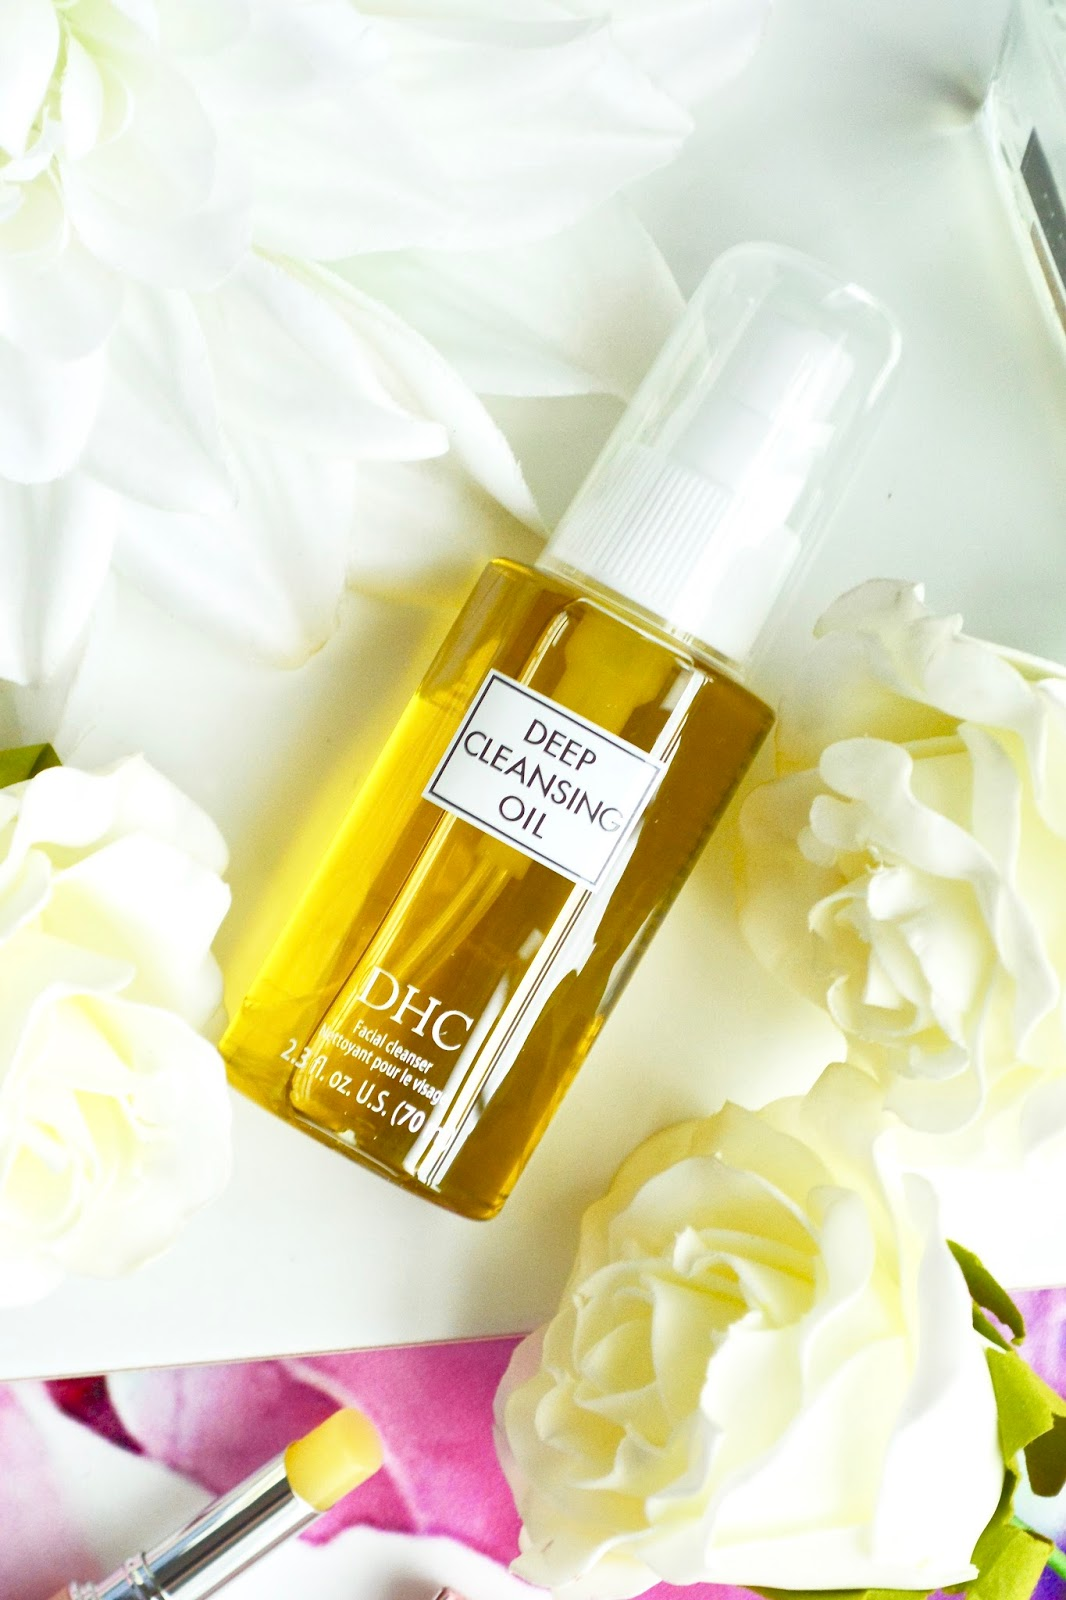 DHC Deep Cleansing Oil & Other DHC Beauty Products